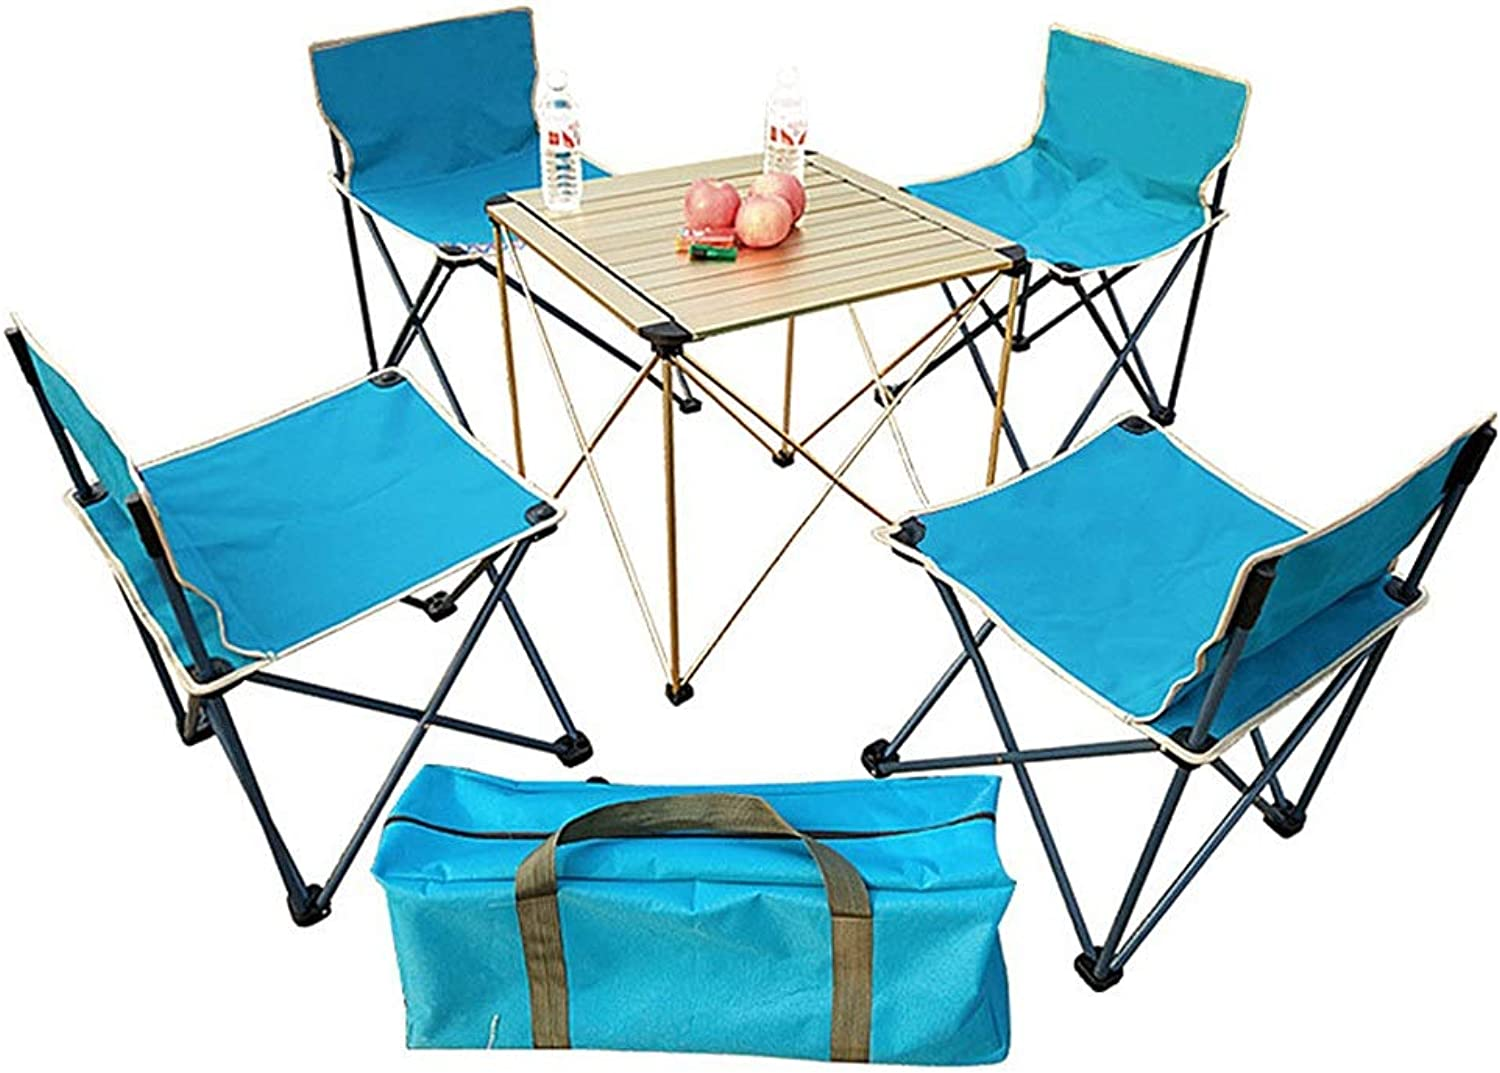 Folding Camping Table and Chairs Aluminum Ultralight Roll Up Table Top for Picnic Hiking Travel Beach Barbecue,5PCS